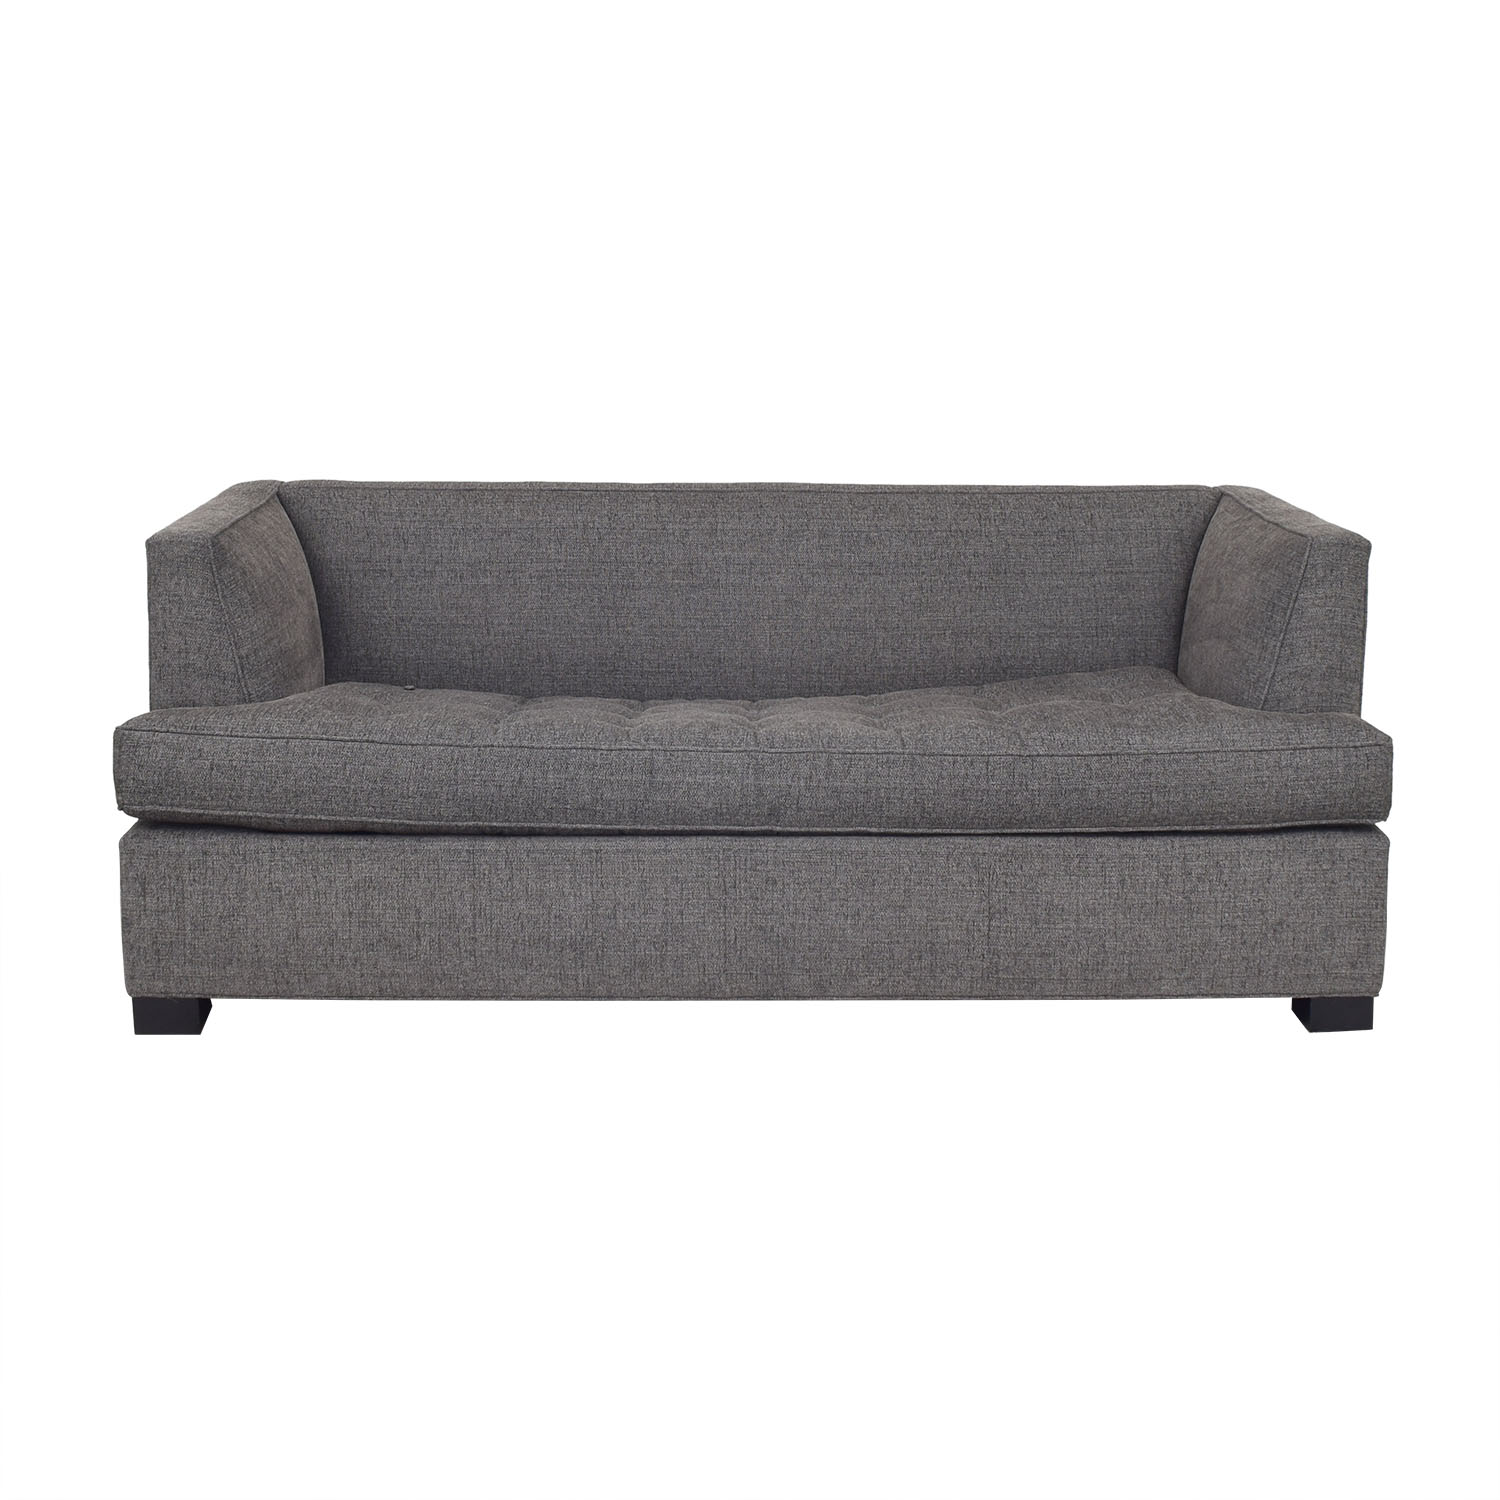 buy Mitchell Gold + Bob Williams Full Sleeper Sofa Mitchell Gold + Bob Williams Sofas